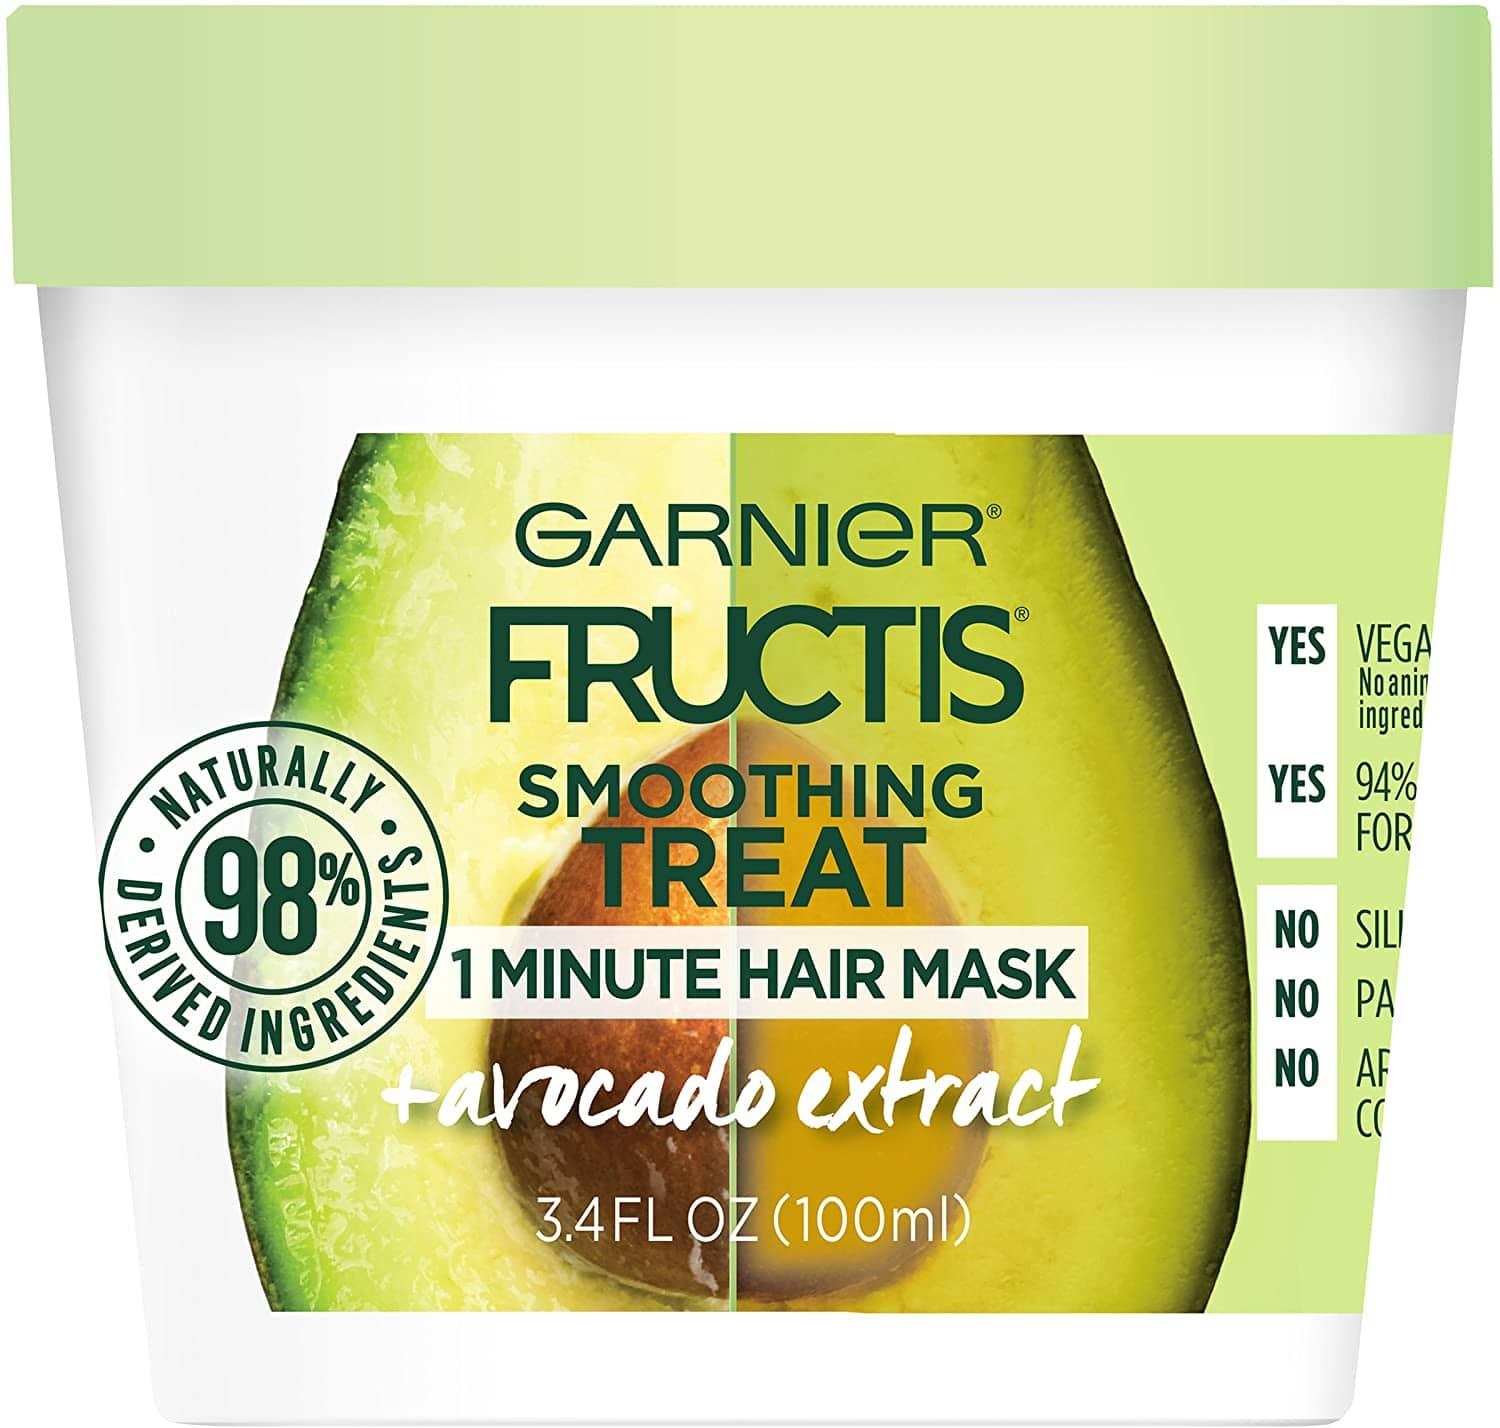 Garnier Fructis Smoothing Treat 1 Minute Hair Mask with Avocado Extract, 3.4 Fl Oz $1.63 with s/s